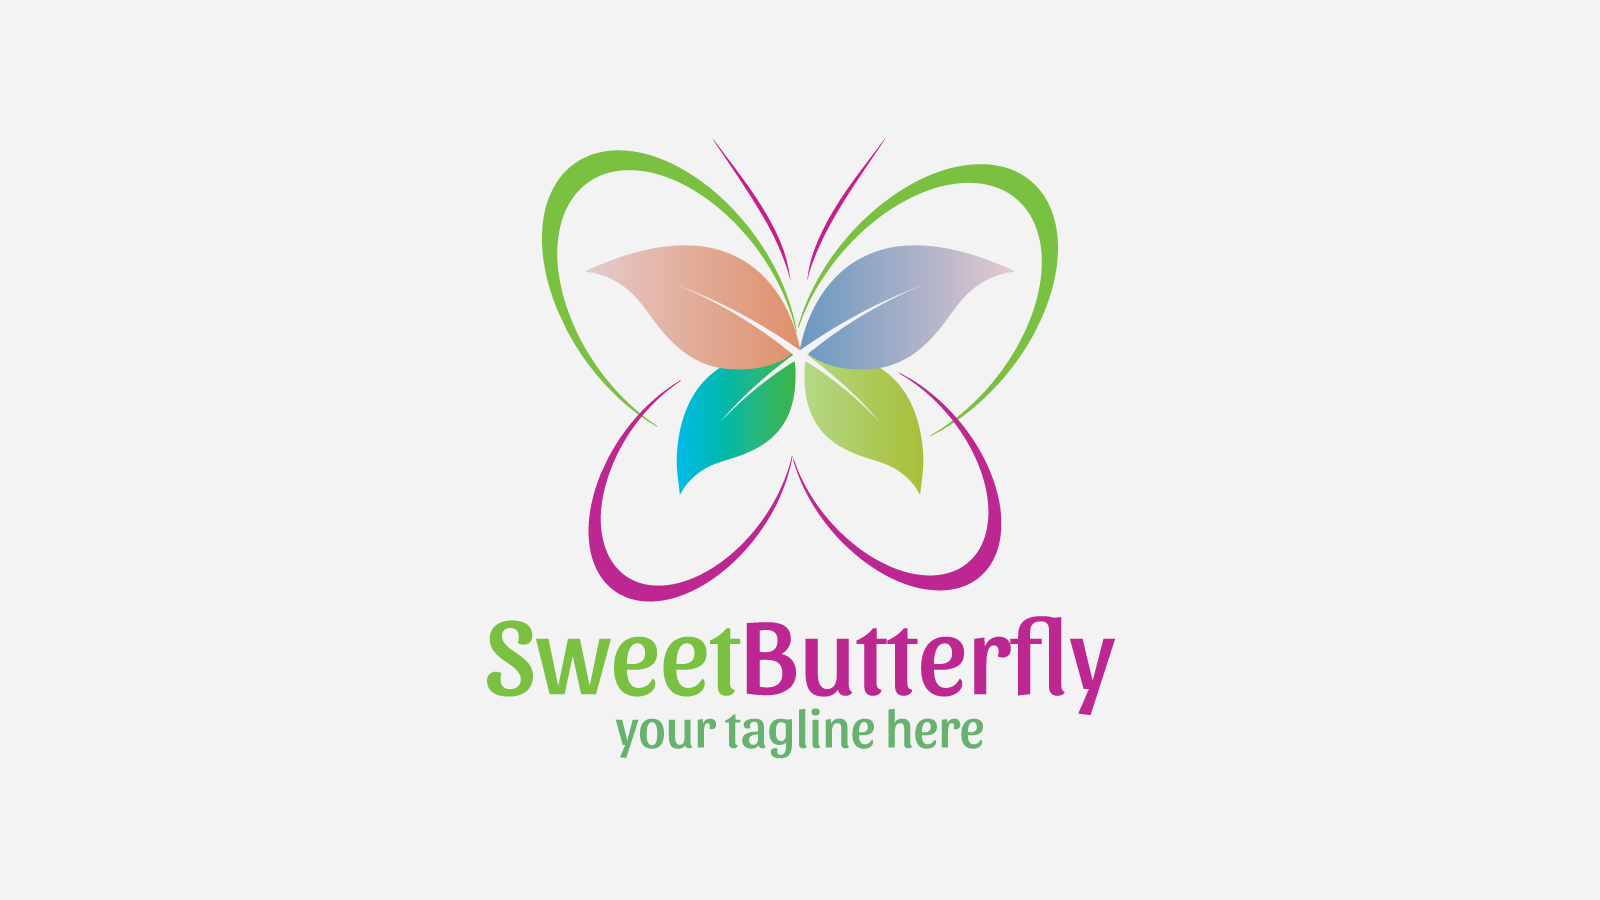 Free Online Logo Maker Design a Custom Logo  Canva